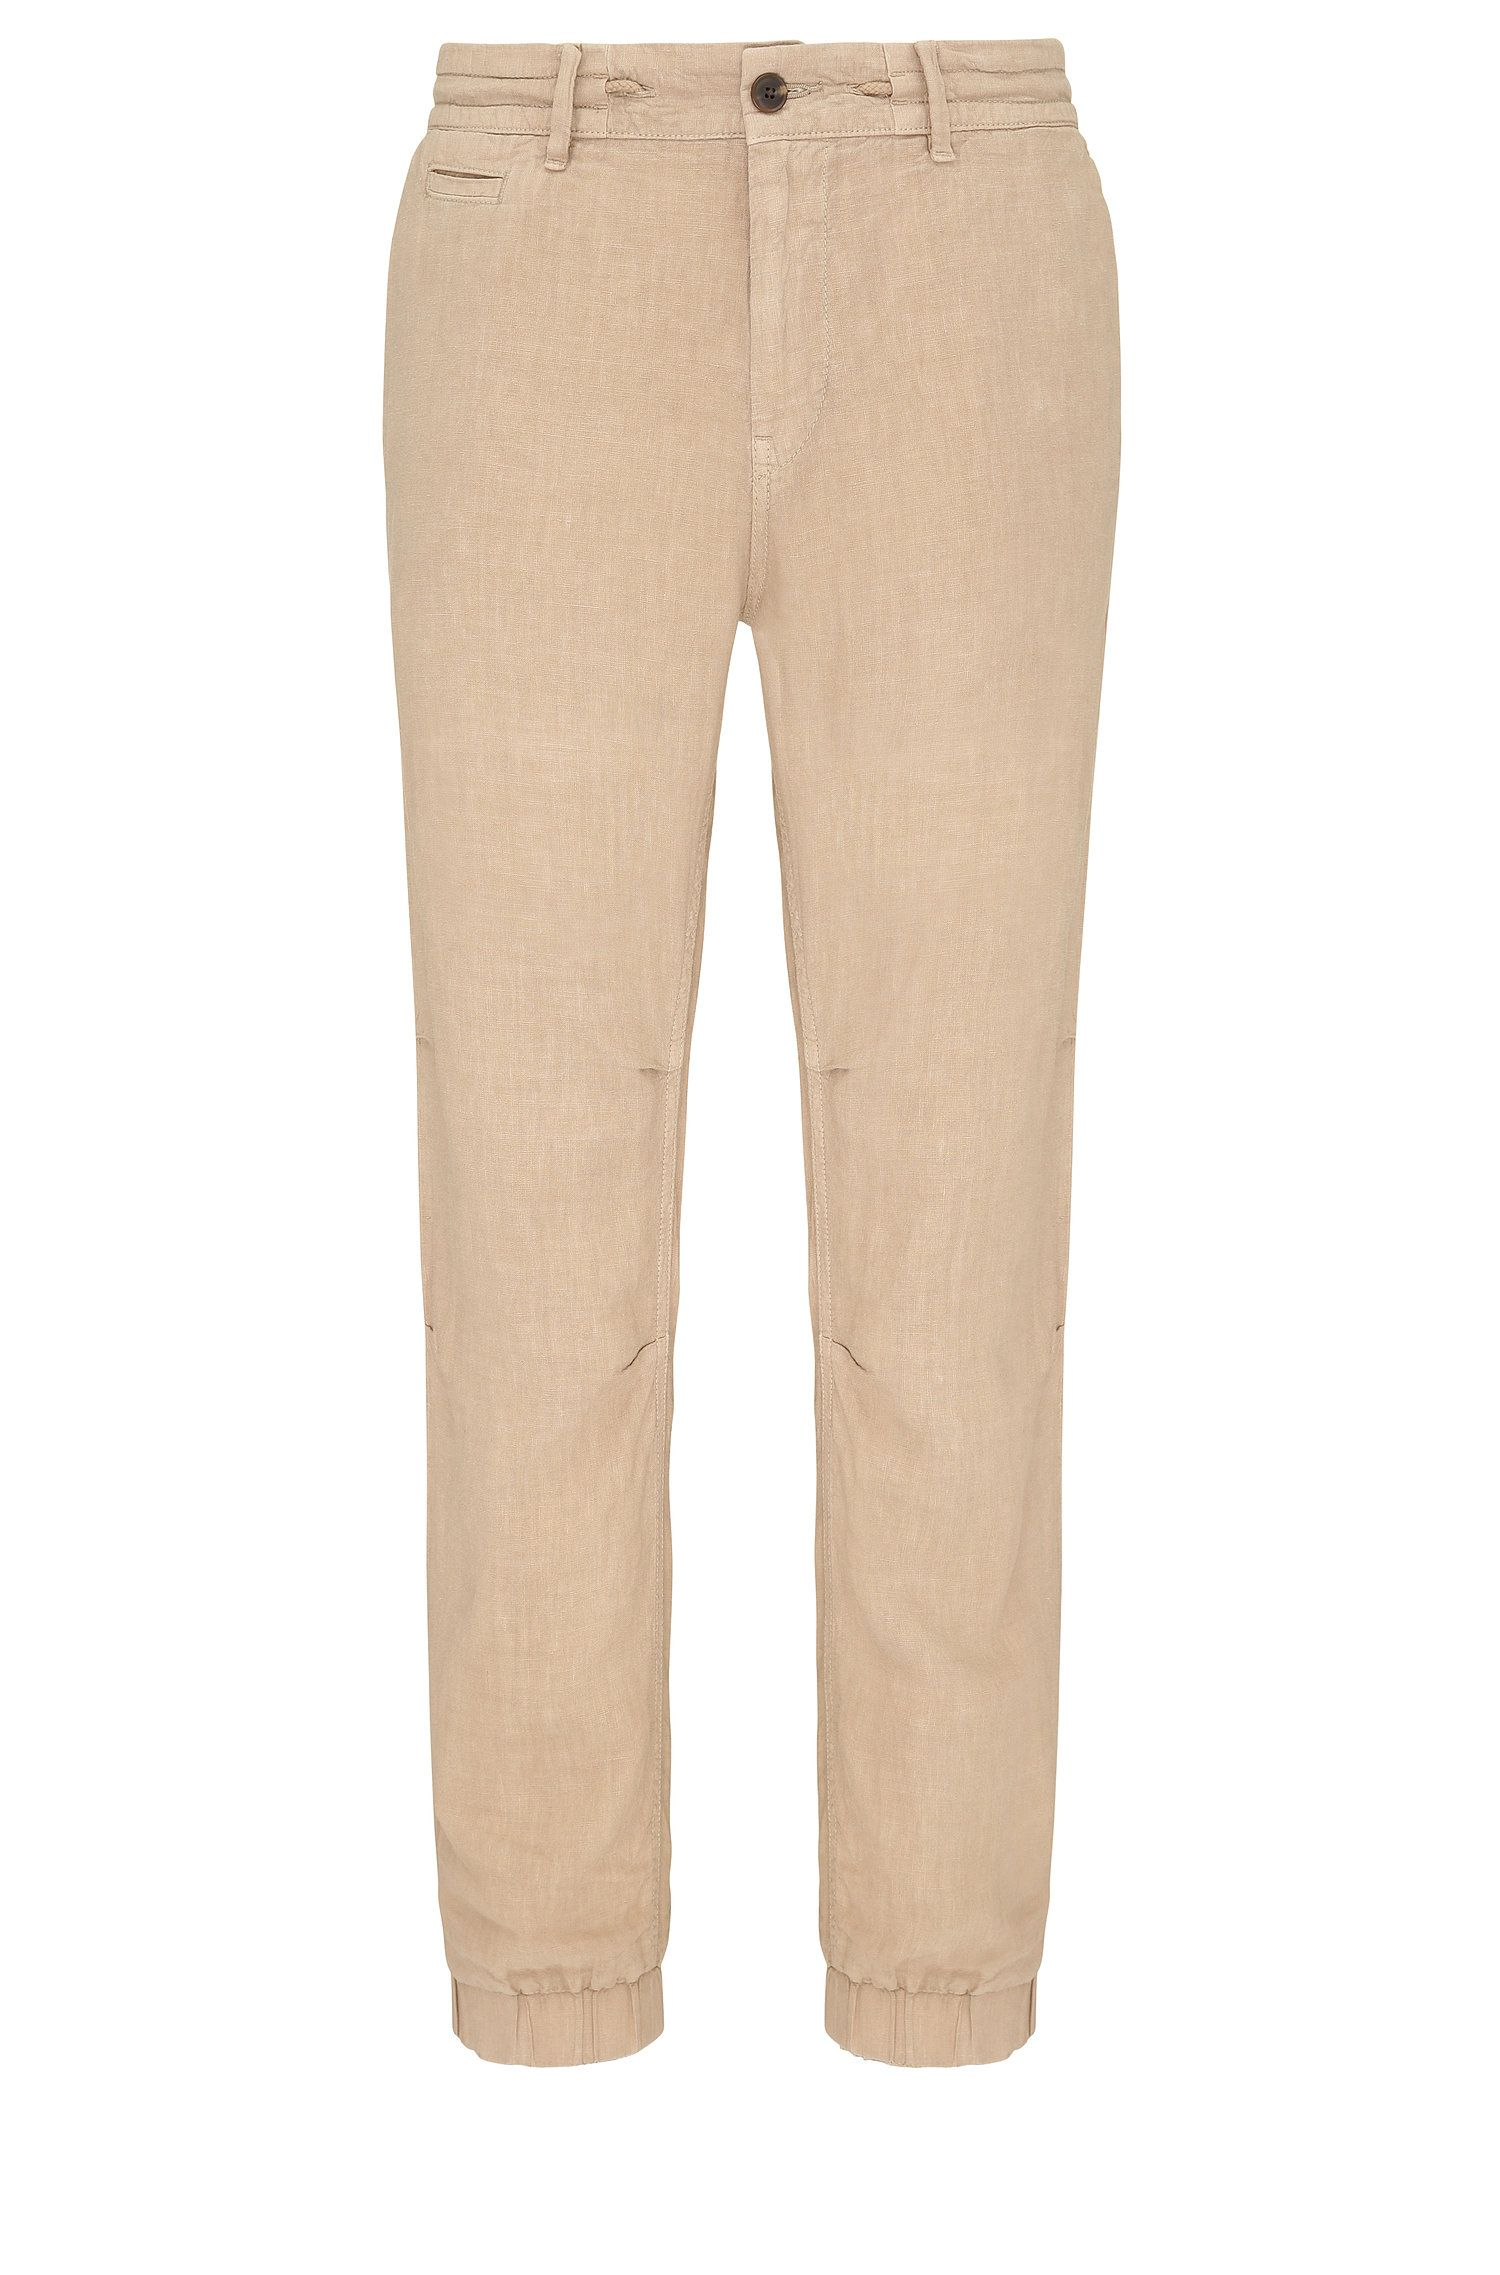 Pantaloni tapered fit in lino in stile pantaloni da jogging: 'Siman3-D'